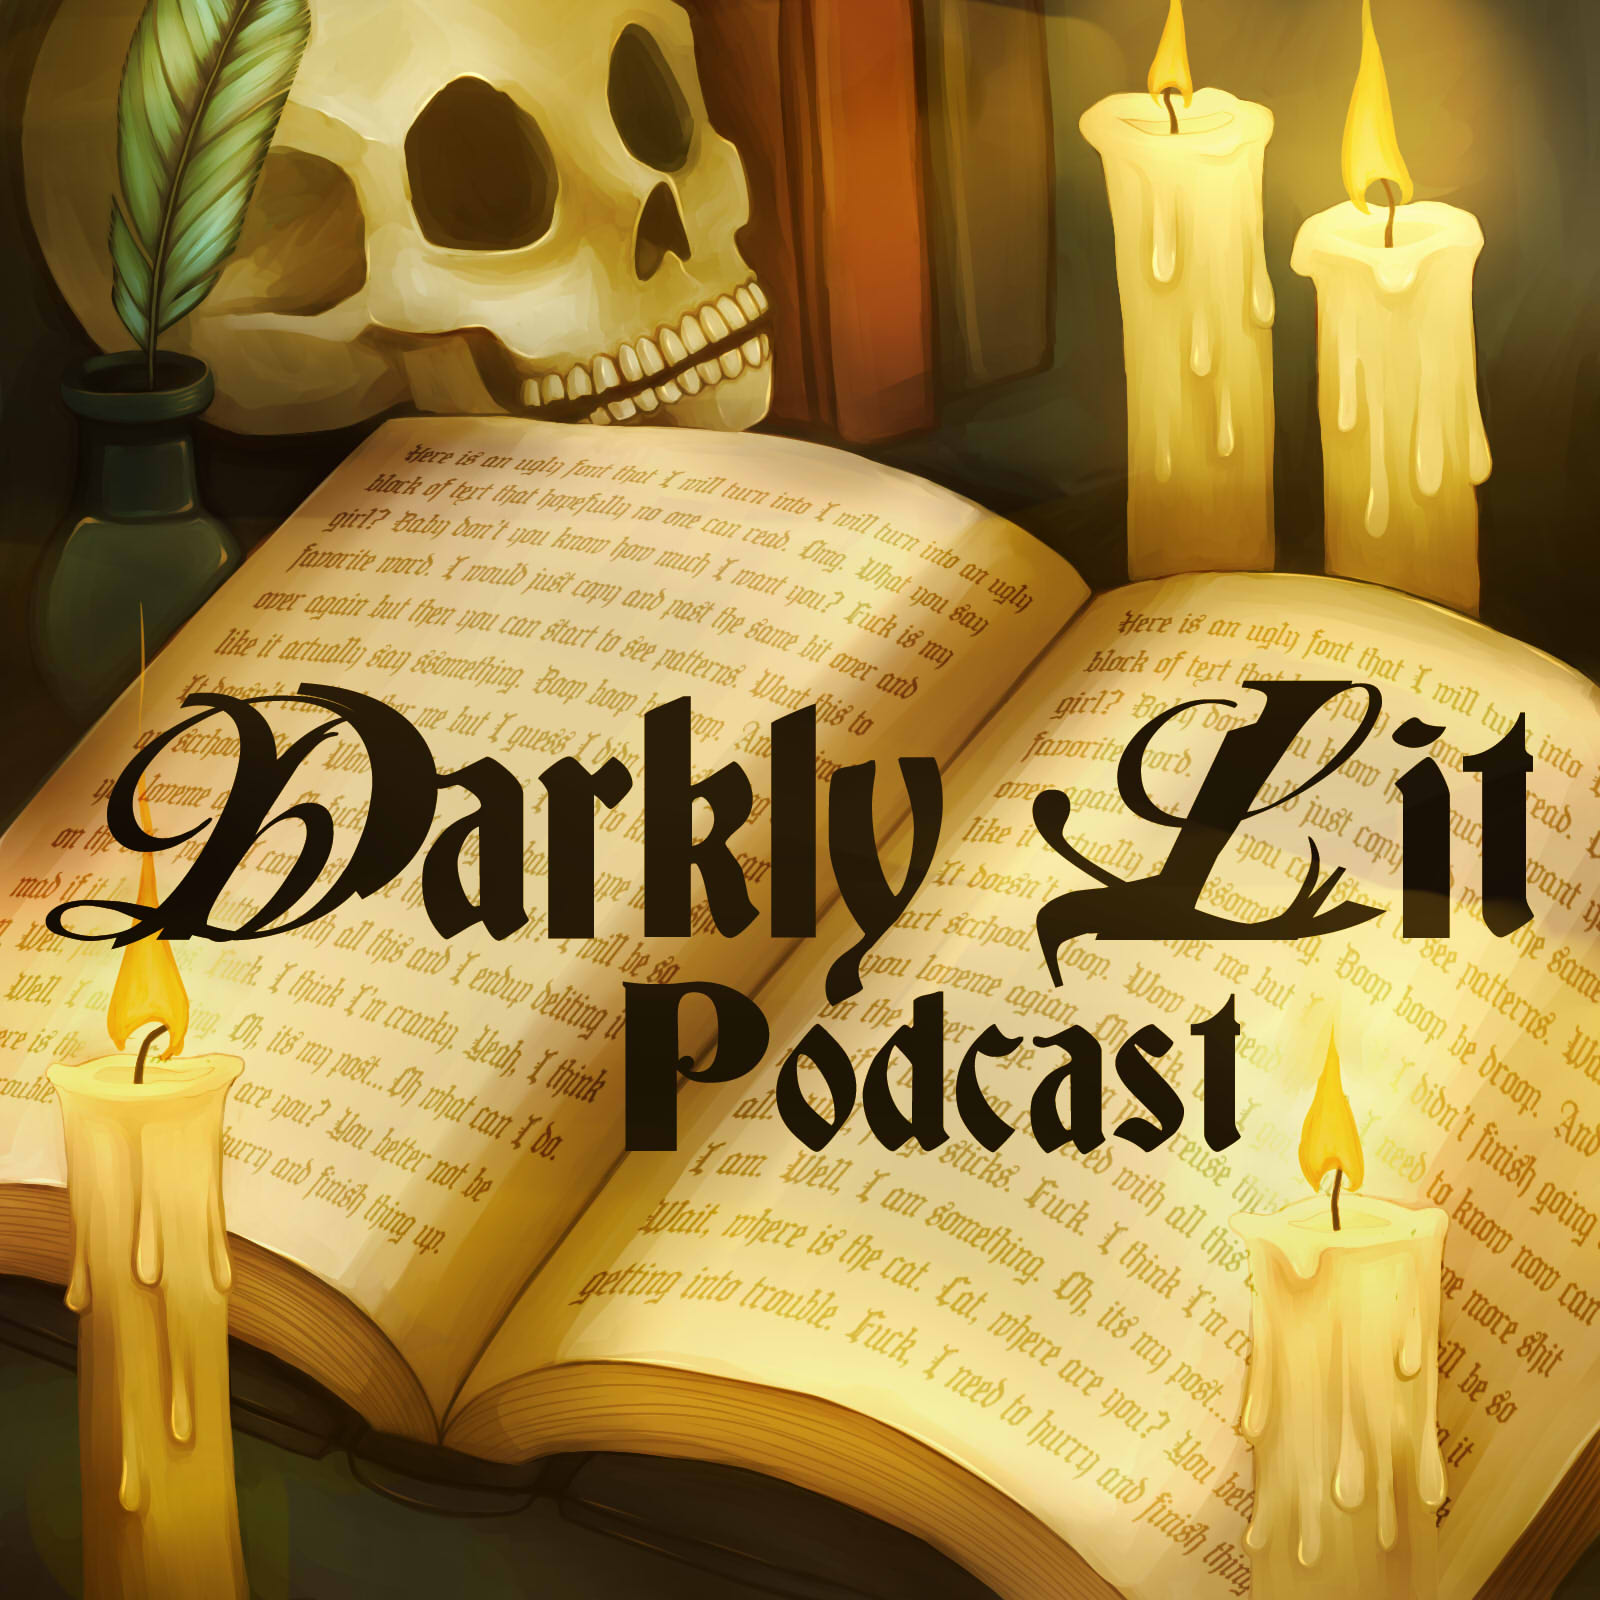 Darkly Lit Episodes Creative Horror